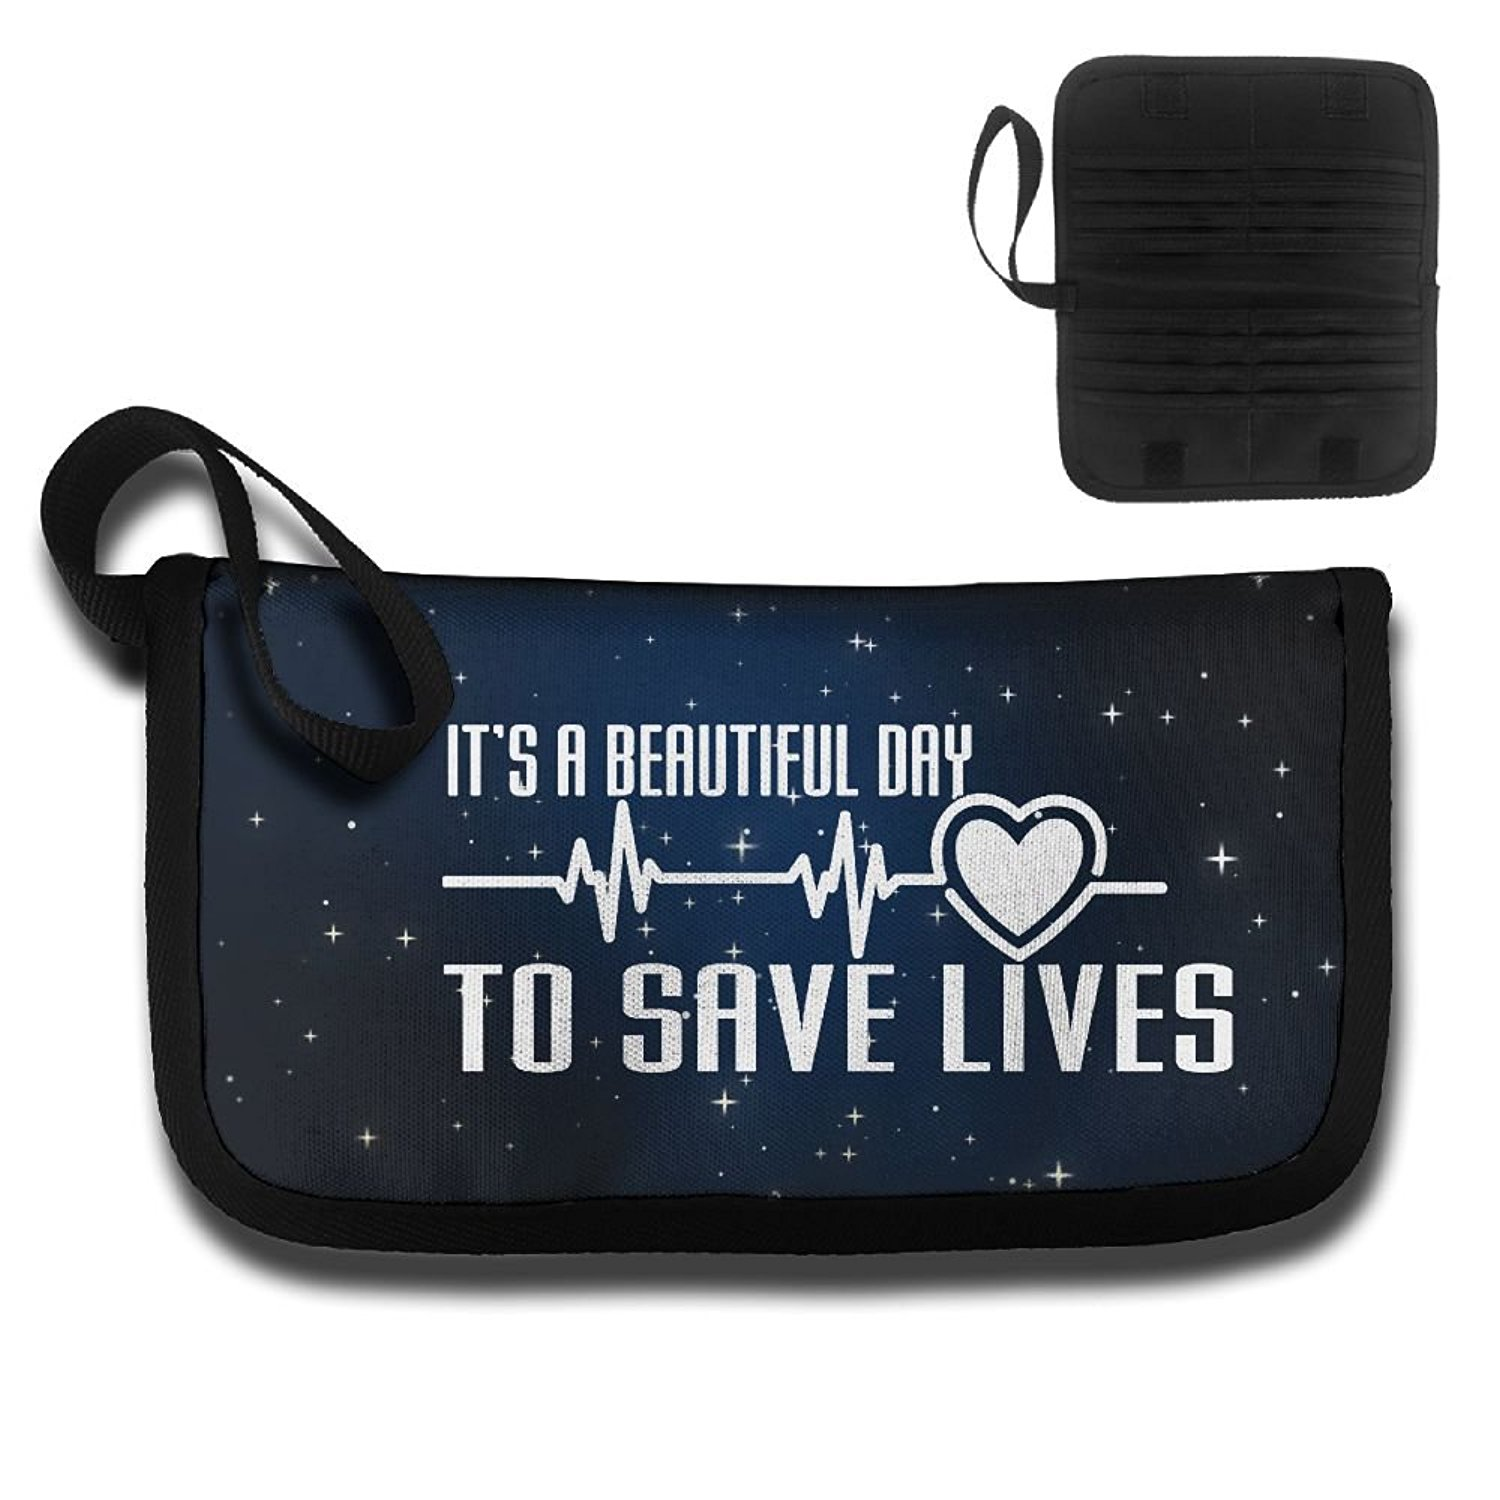 It's A Beautiful Day To Save Lives Travel Wallet Passport Holder Document Organizer